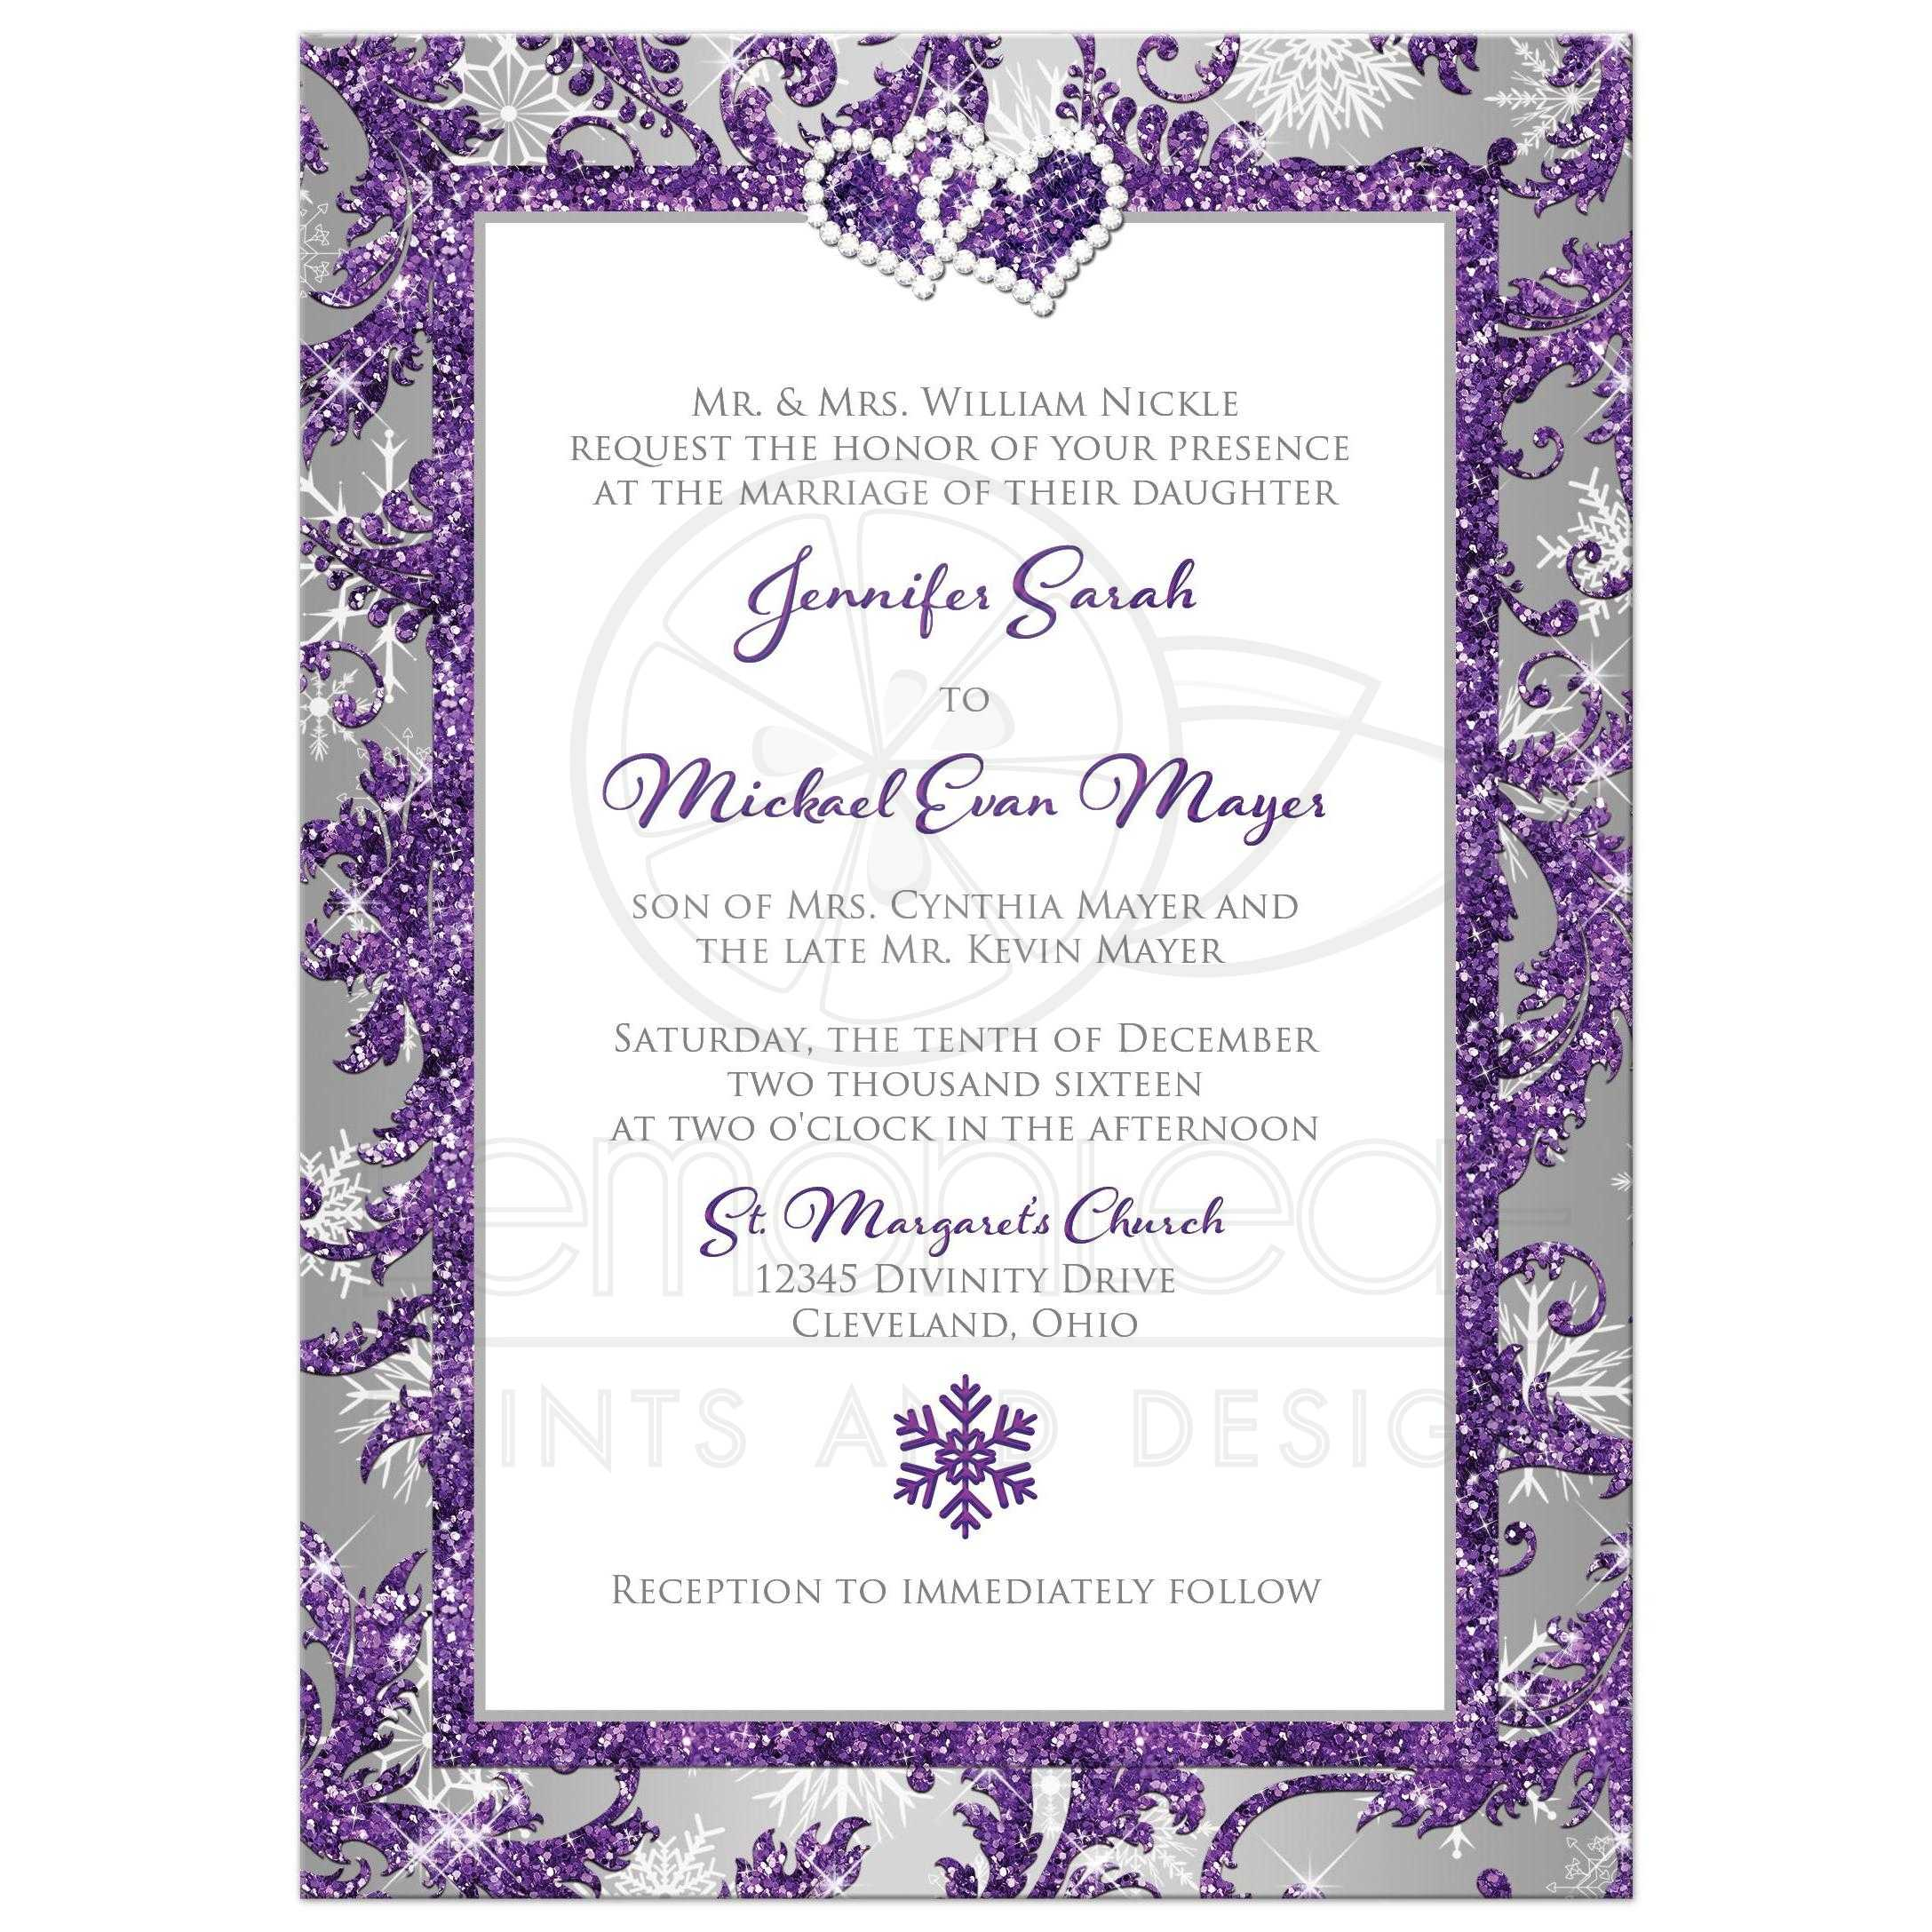 Great Winter Wonderland Wedding Invitation In Ice Purple Silver And White Snowflakes With Joined